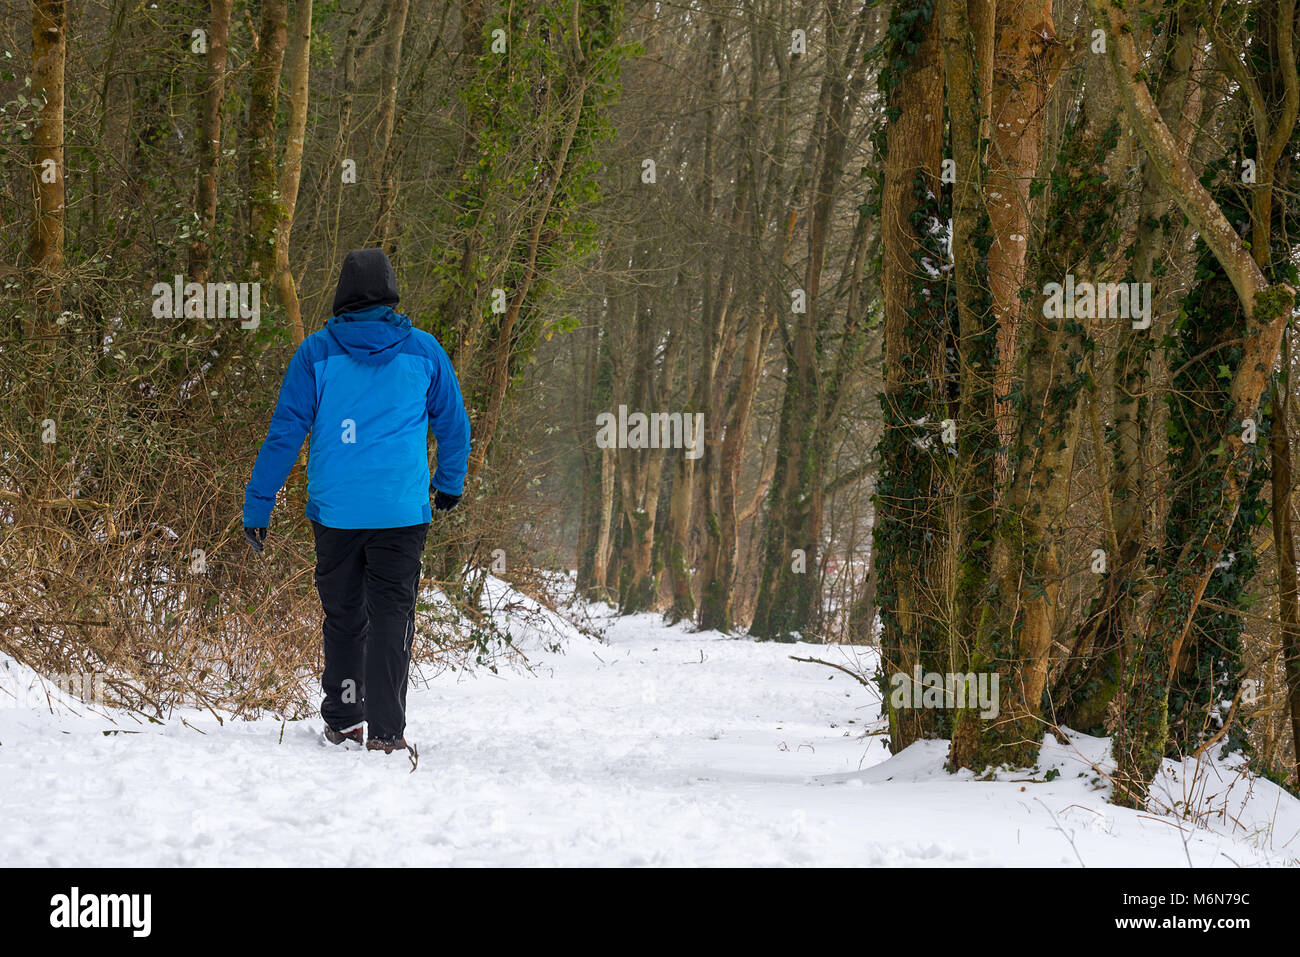 A lone man in warm winter clothes walks along a winding snow covered forest path. Stock Photo